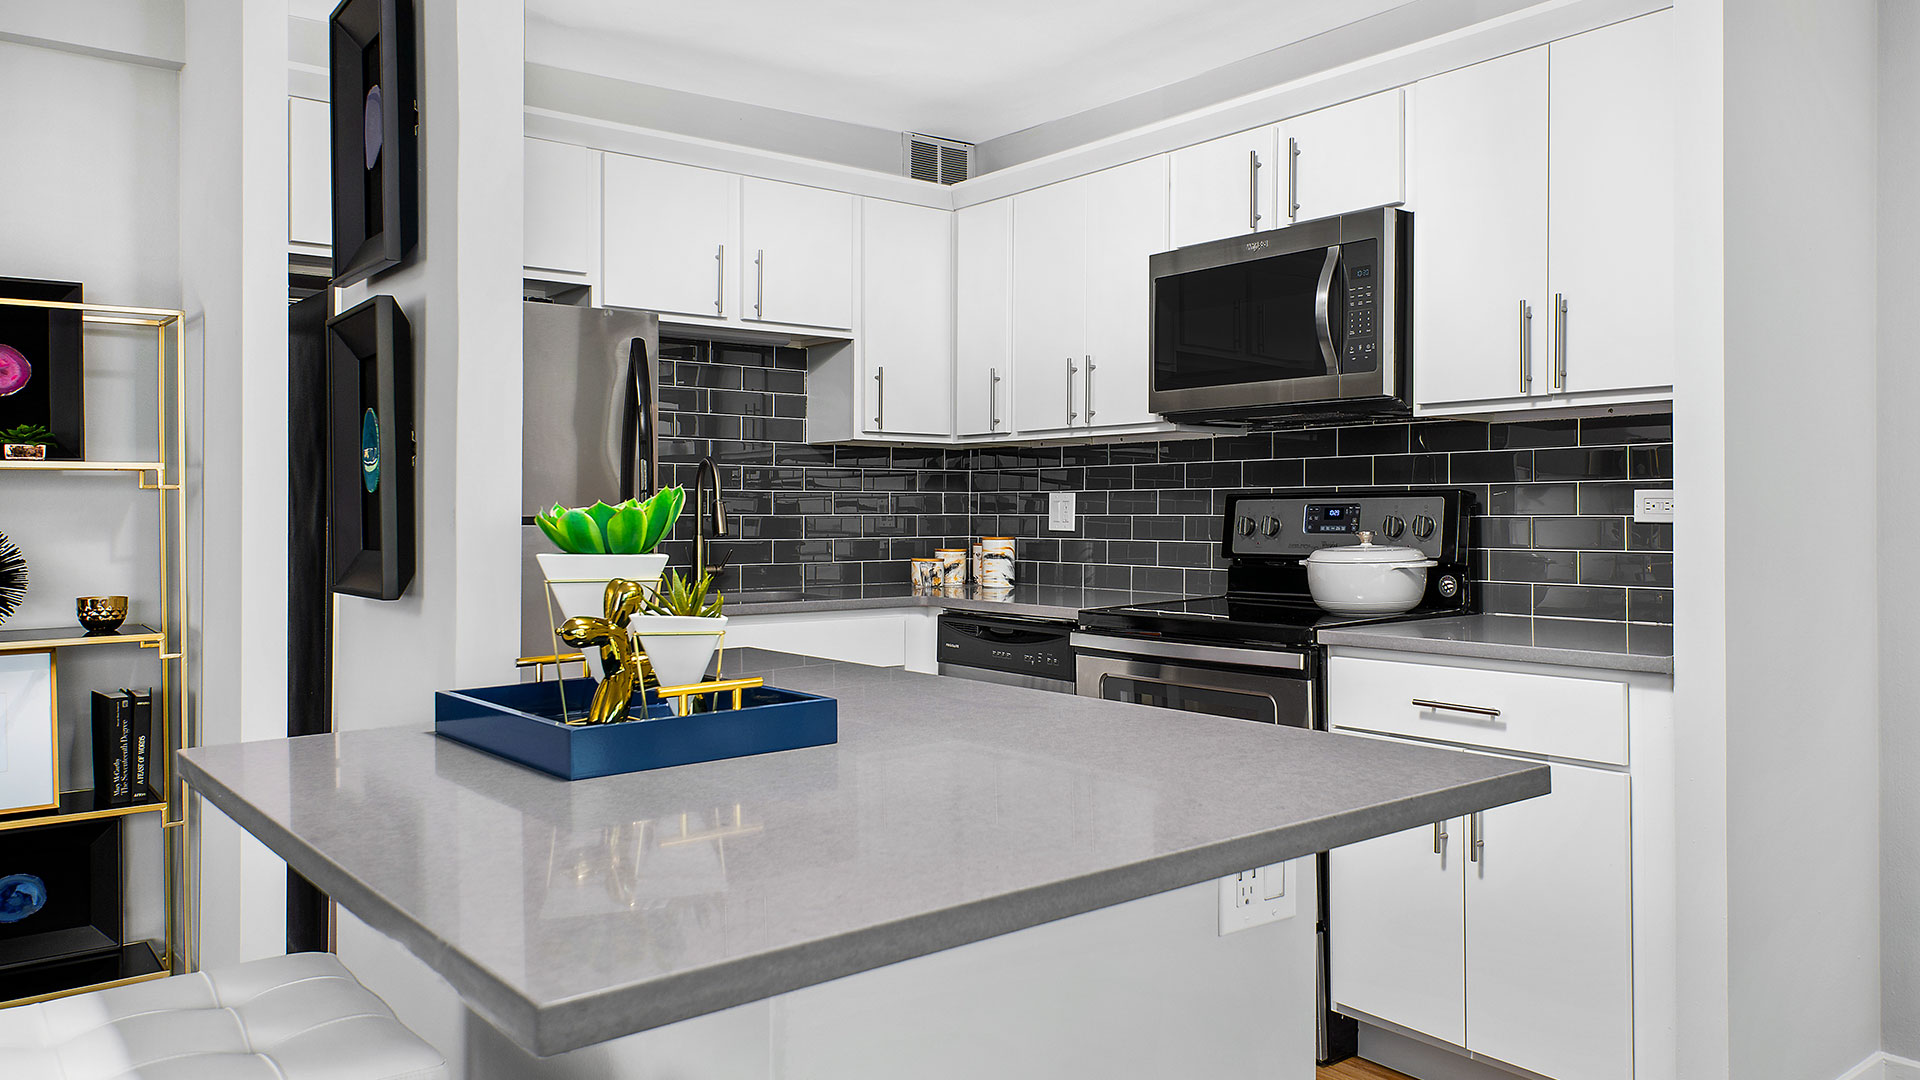 Looking across the kitchen island at a residence kitchen at Eleven Thirty. The cabinets are white with a black, subway tile backsplash. The stainless oven and microwave or in the middle with the refrigerator to the left.